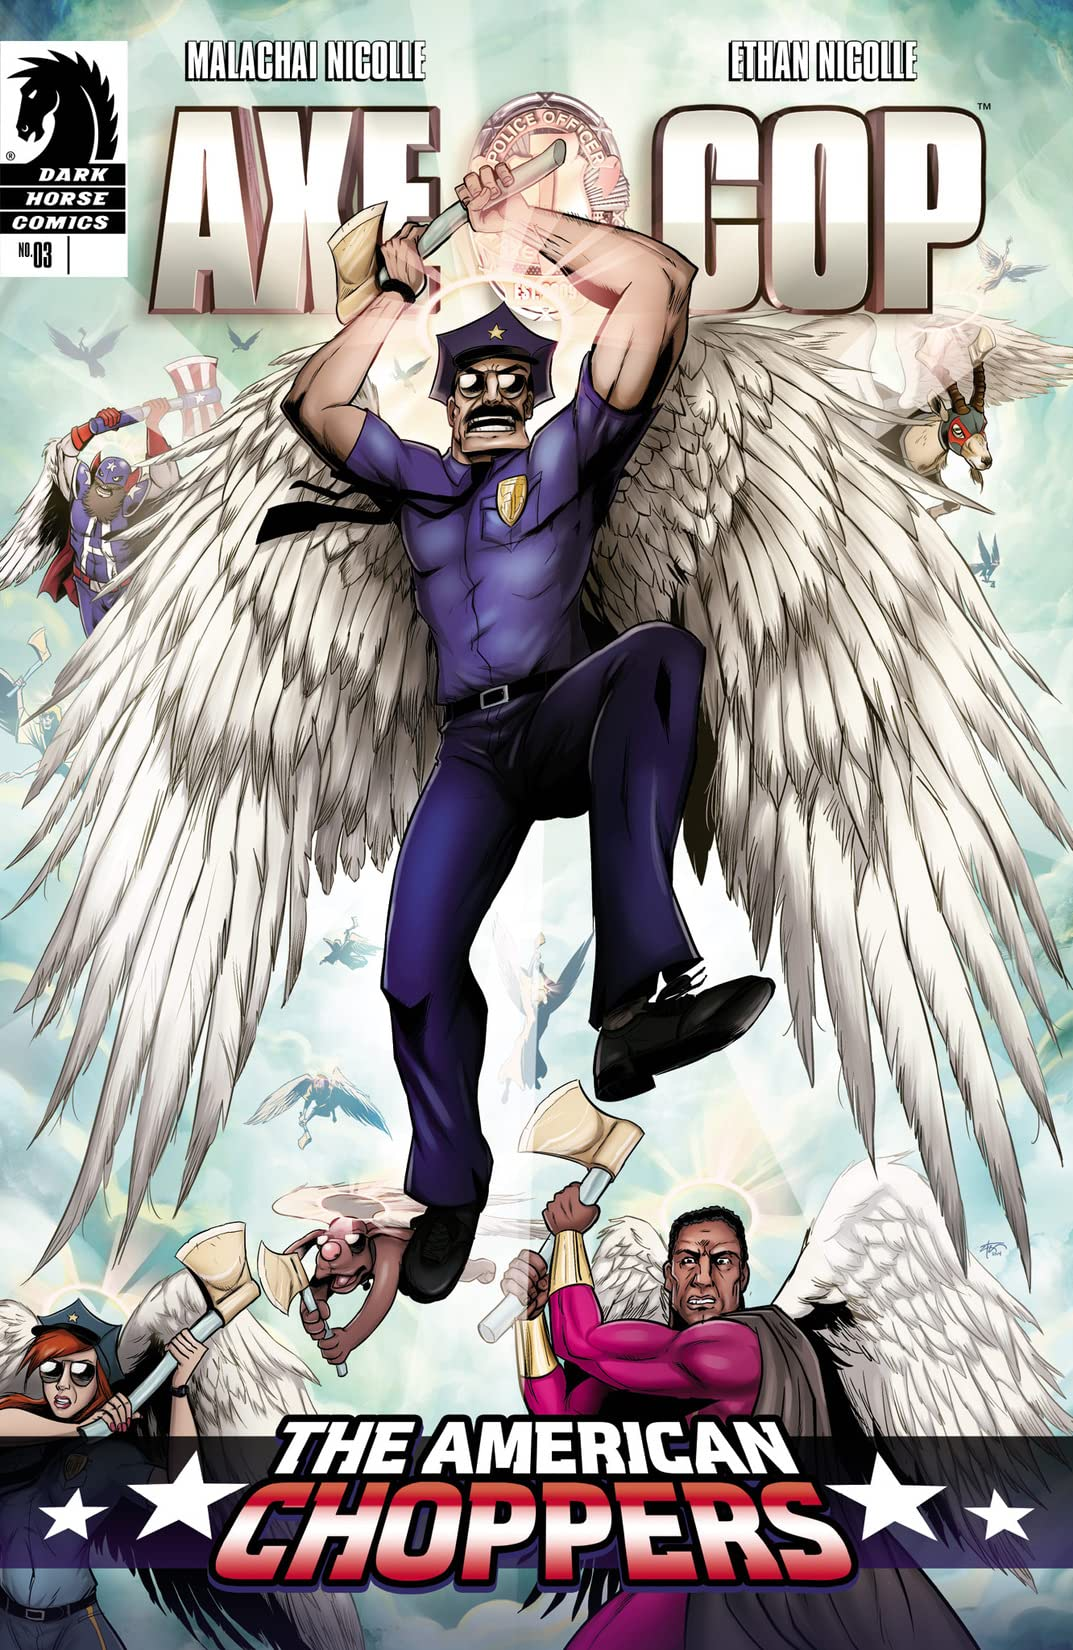 Axe Cop: The American Choppers #3